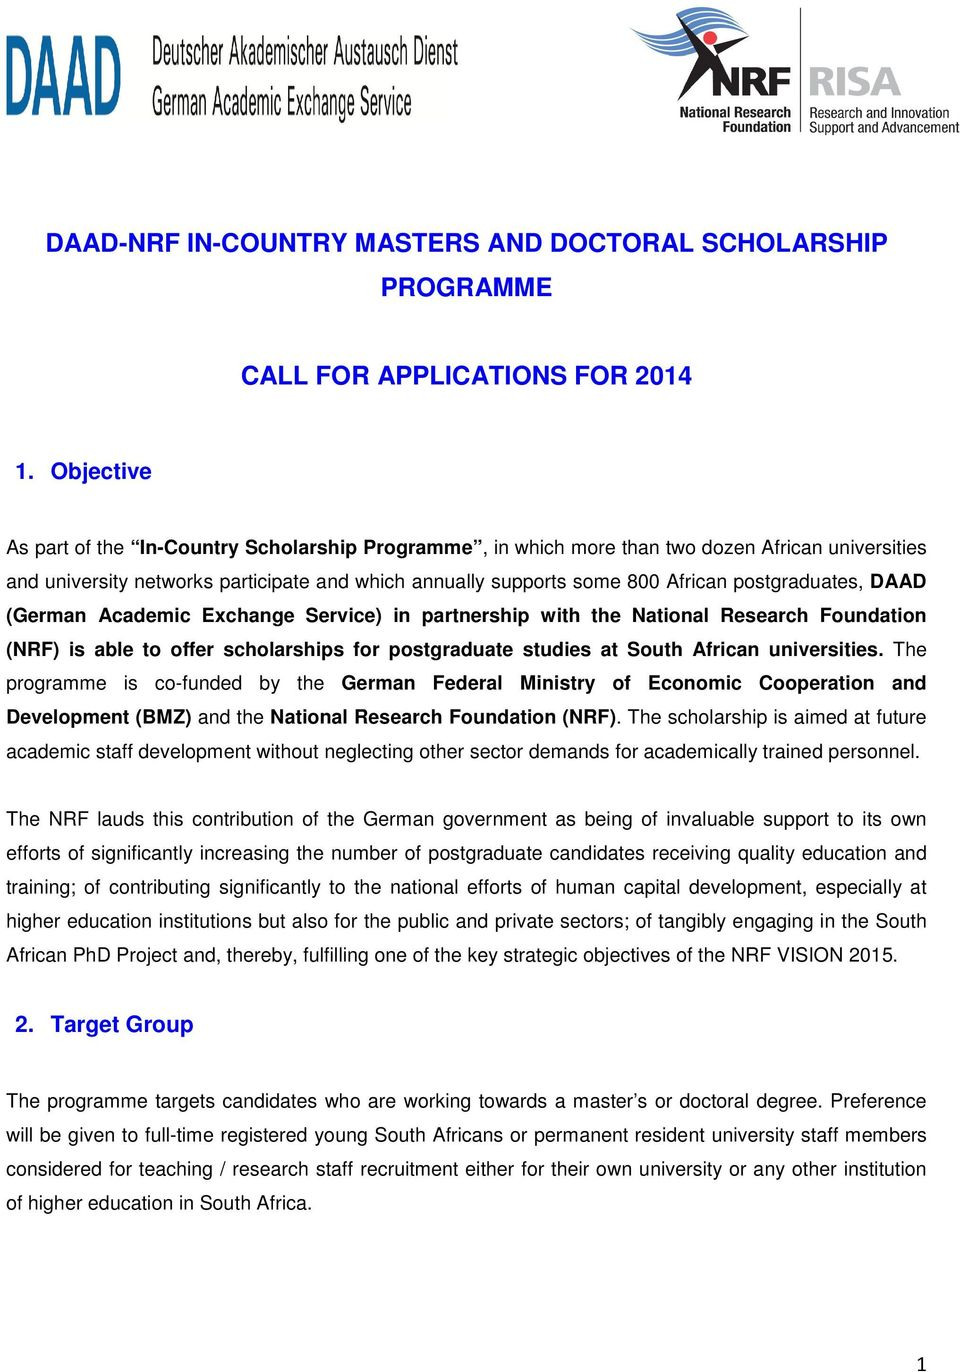 postgraduates, DAAD (German Academic Exchange Service) in partnership with the National Research Foundation (NRF) is able to offer scholarships for postgraduate studies at South African universities.